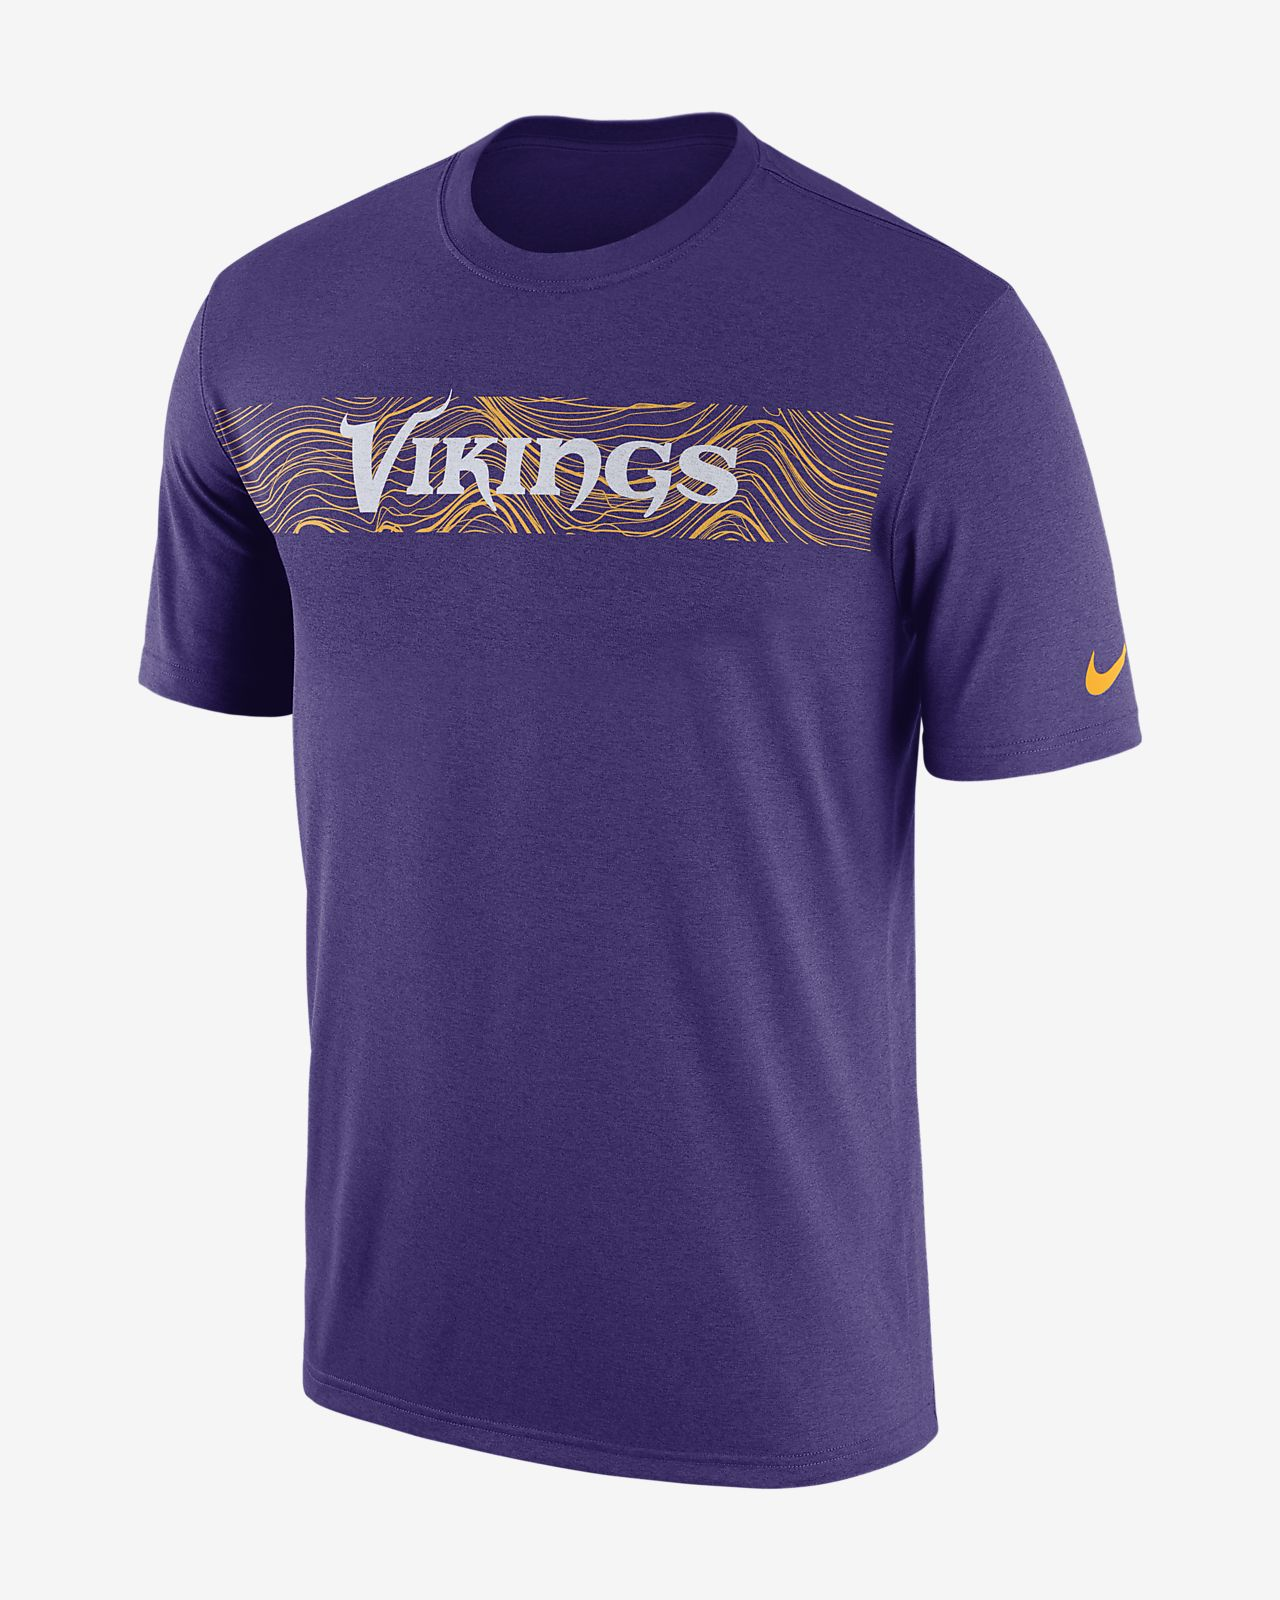 Nike Dri-FIT Legend Seismic (NFL Vikings) Men's T-Shirt